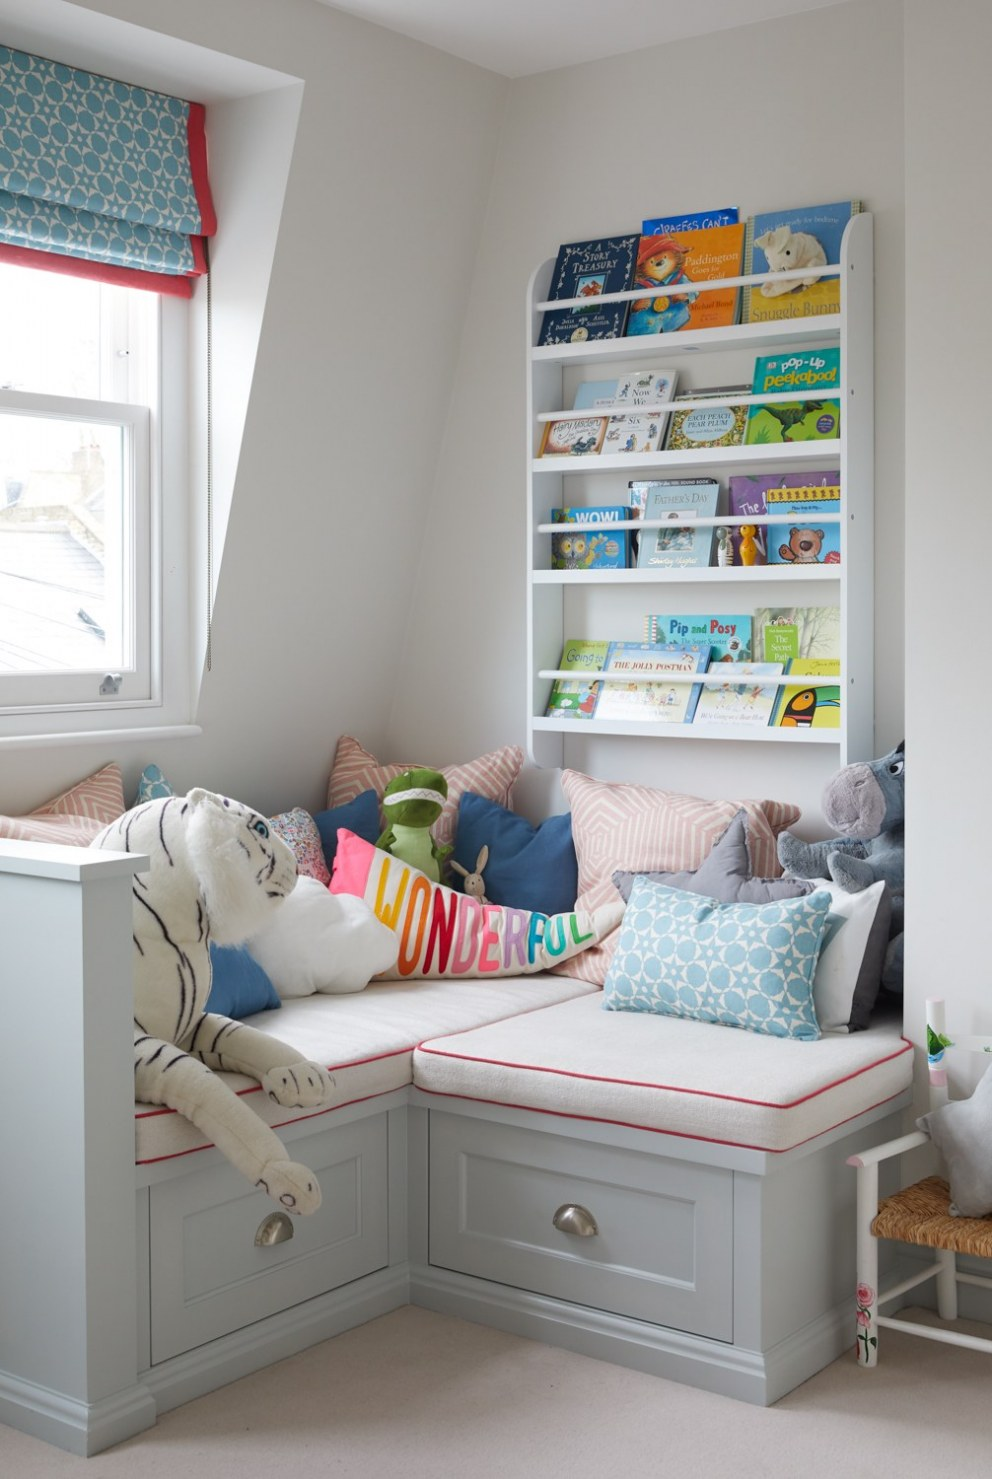 Parsons Green Family Home | Little reading corner | Interior Designers